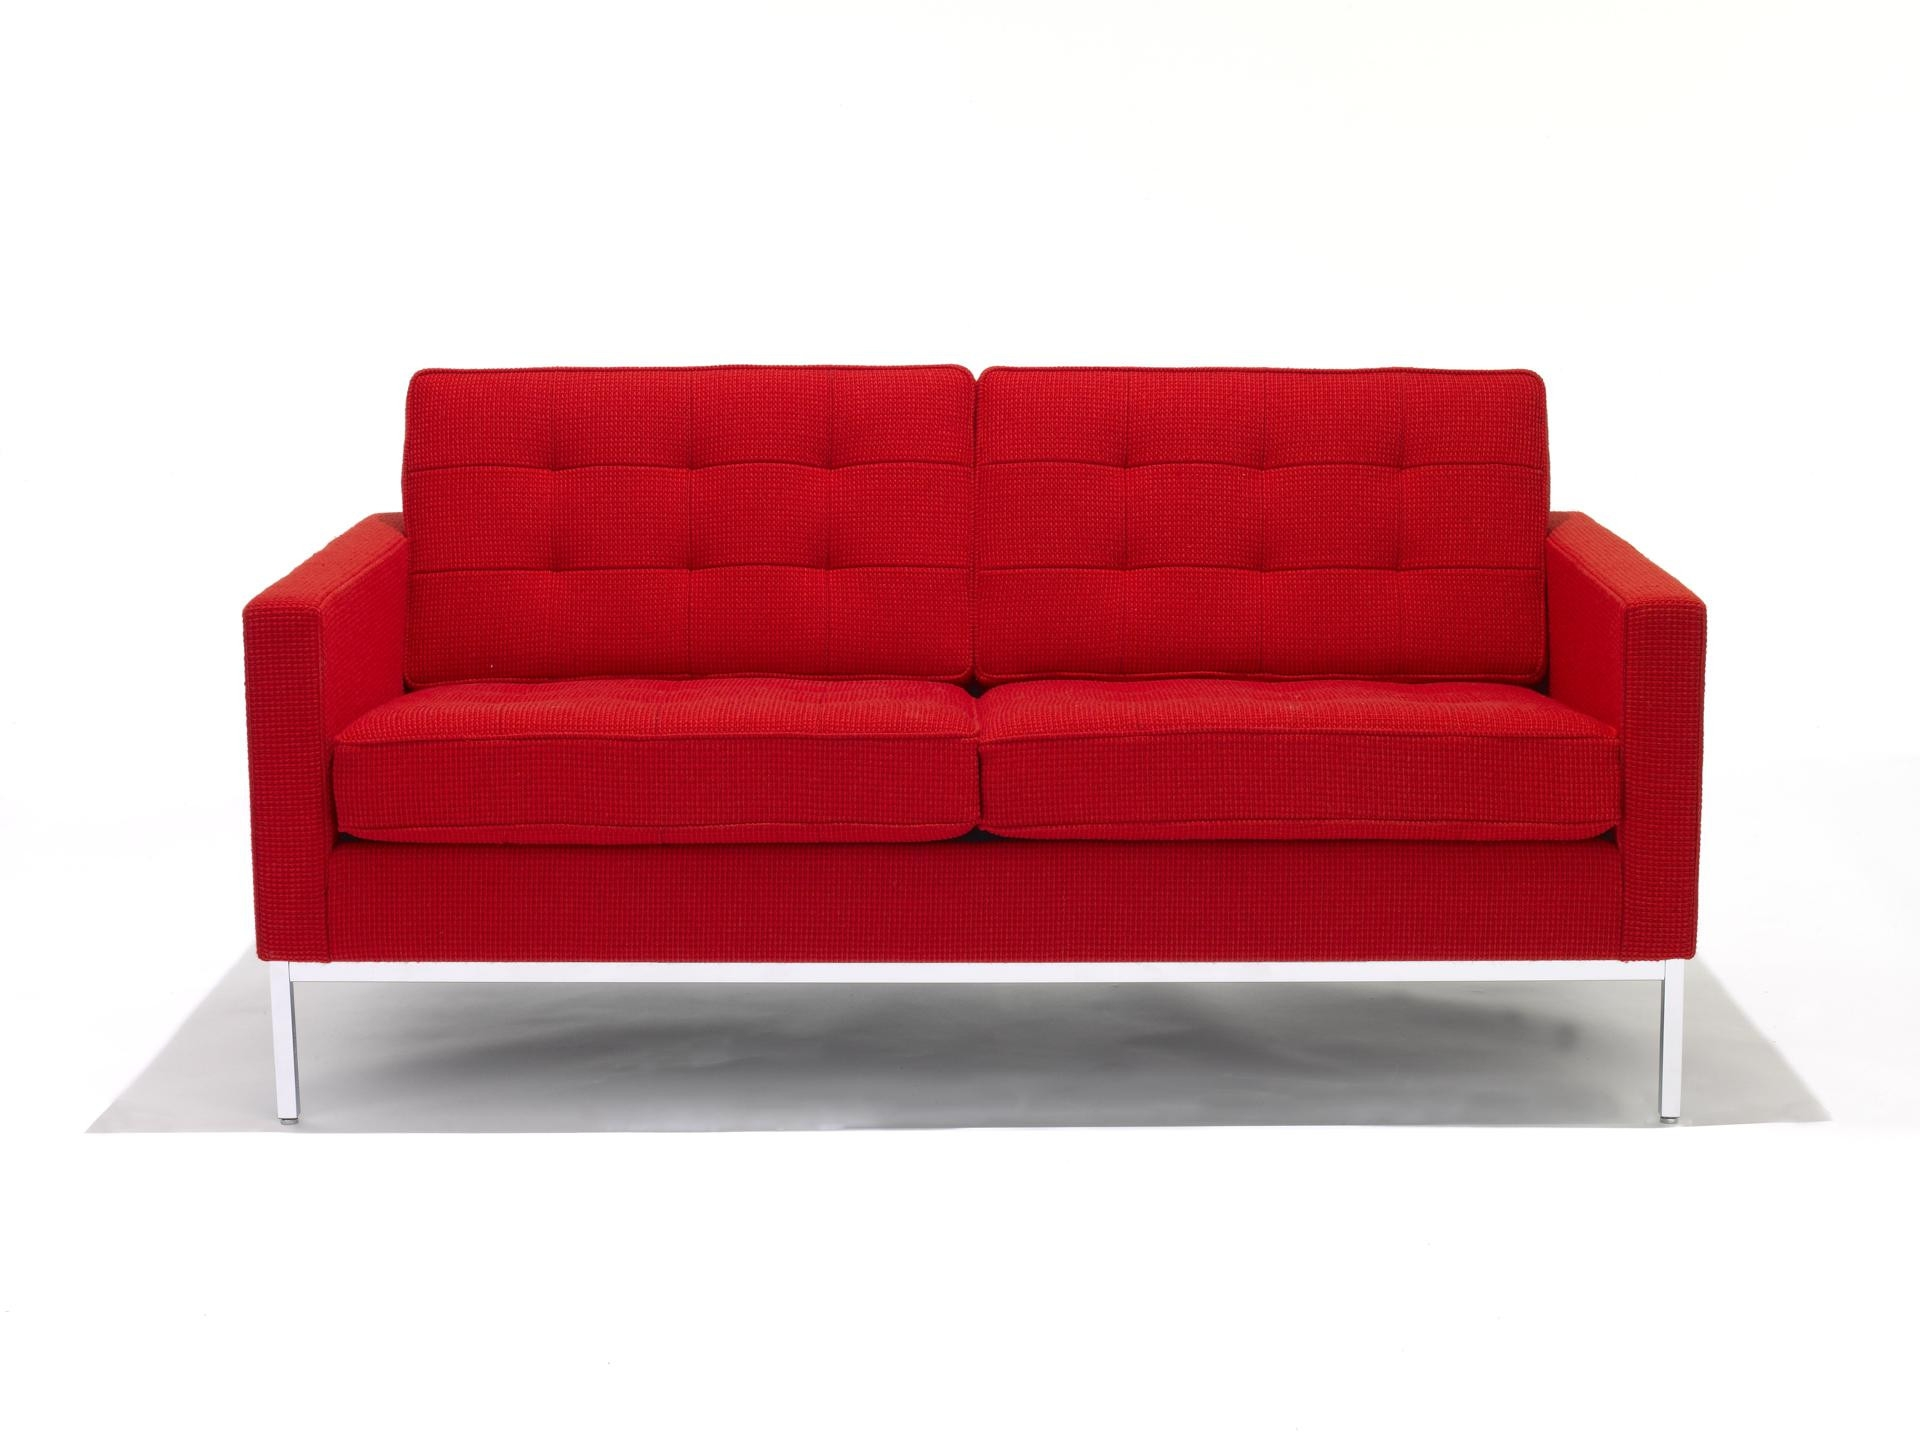 Florence Knoll Sofa 2 Seat Our Summer Sale Is Now On Up To 20 Pertaining To Florence Medium Sofas (Image 5 of 15)